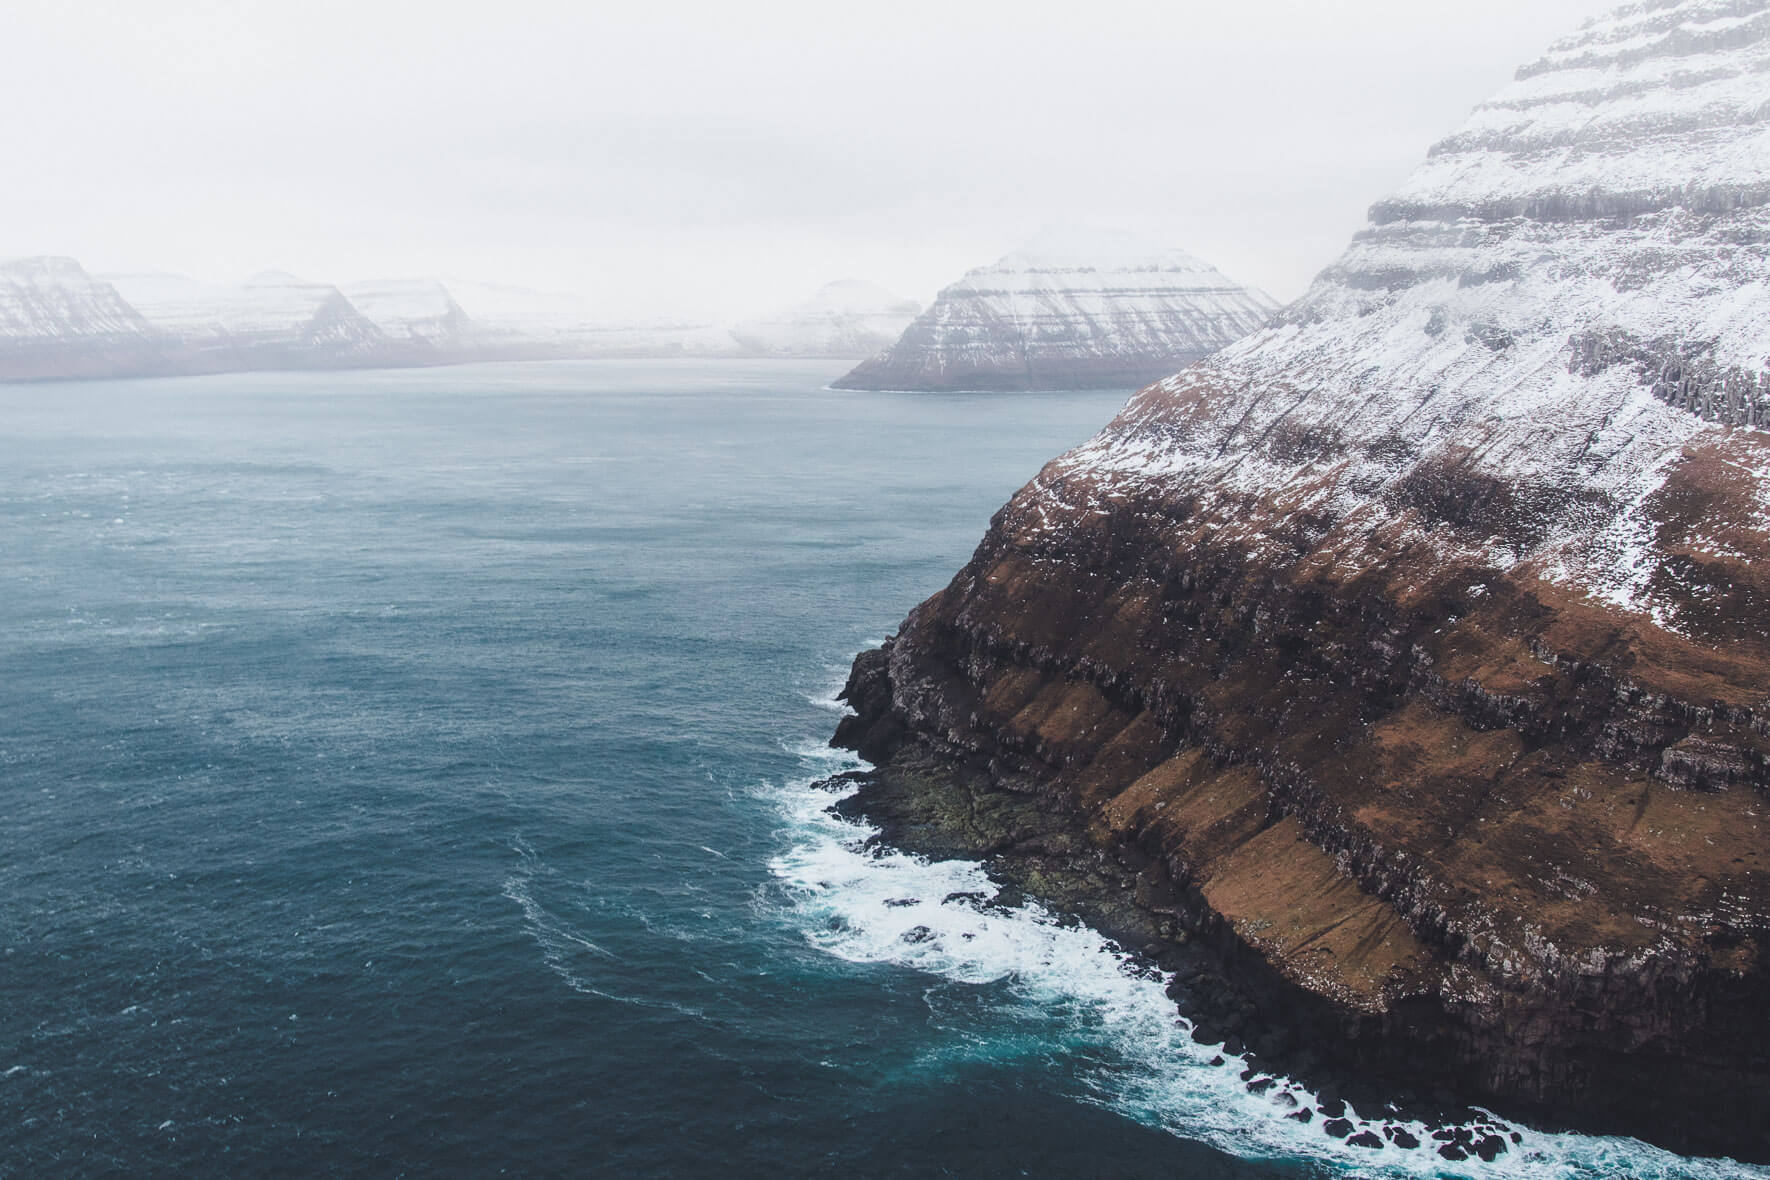 The coast of the Faroe Islands seen from a helicopter in Winter